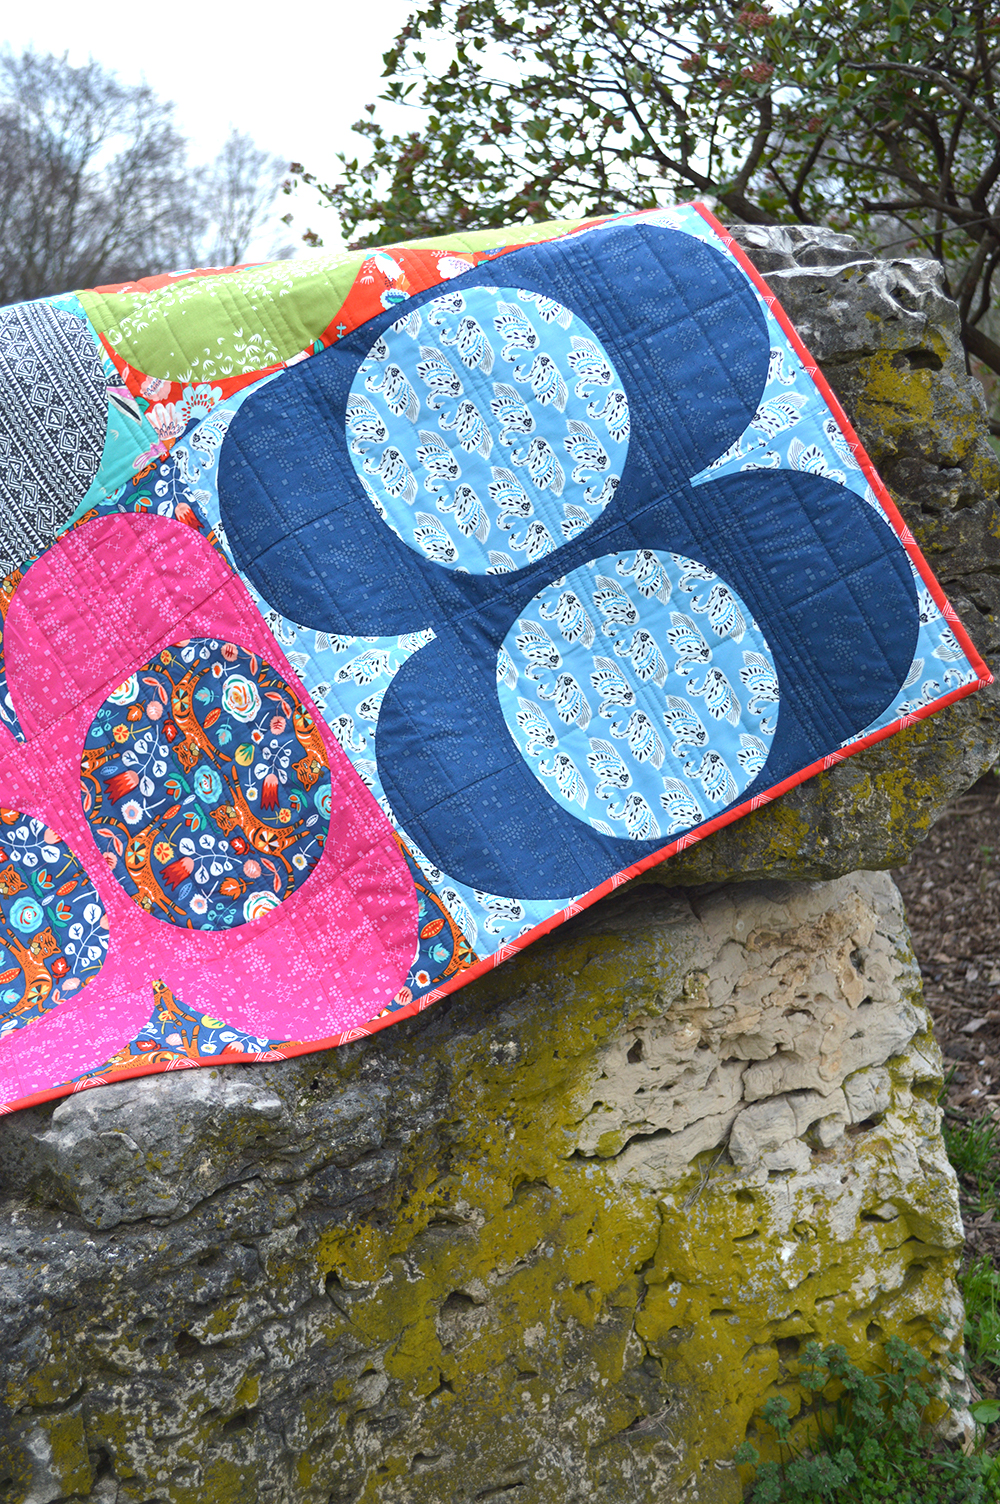 Talin fabrics by Art Gallery Fabrics, quilt with curved piecing by Sharon McConnell Color Girl quilts